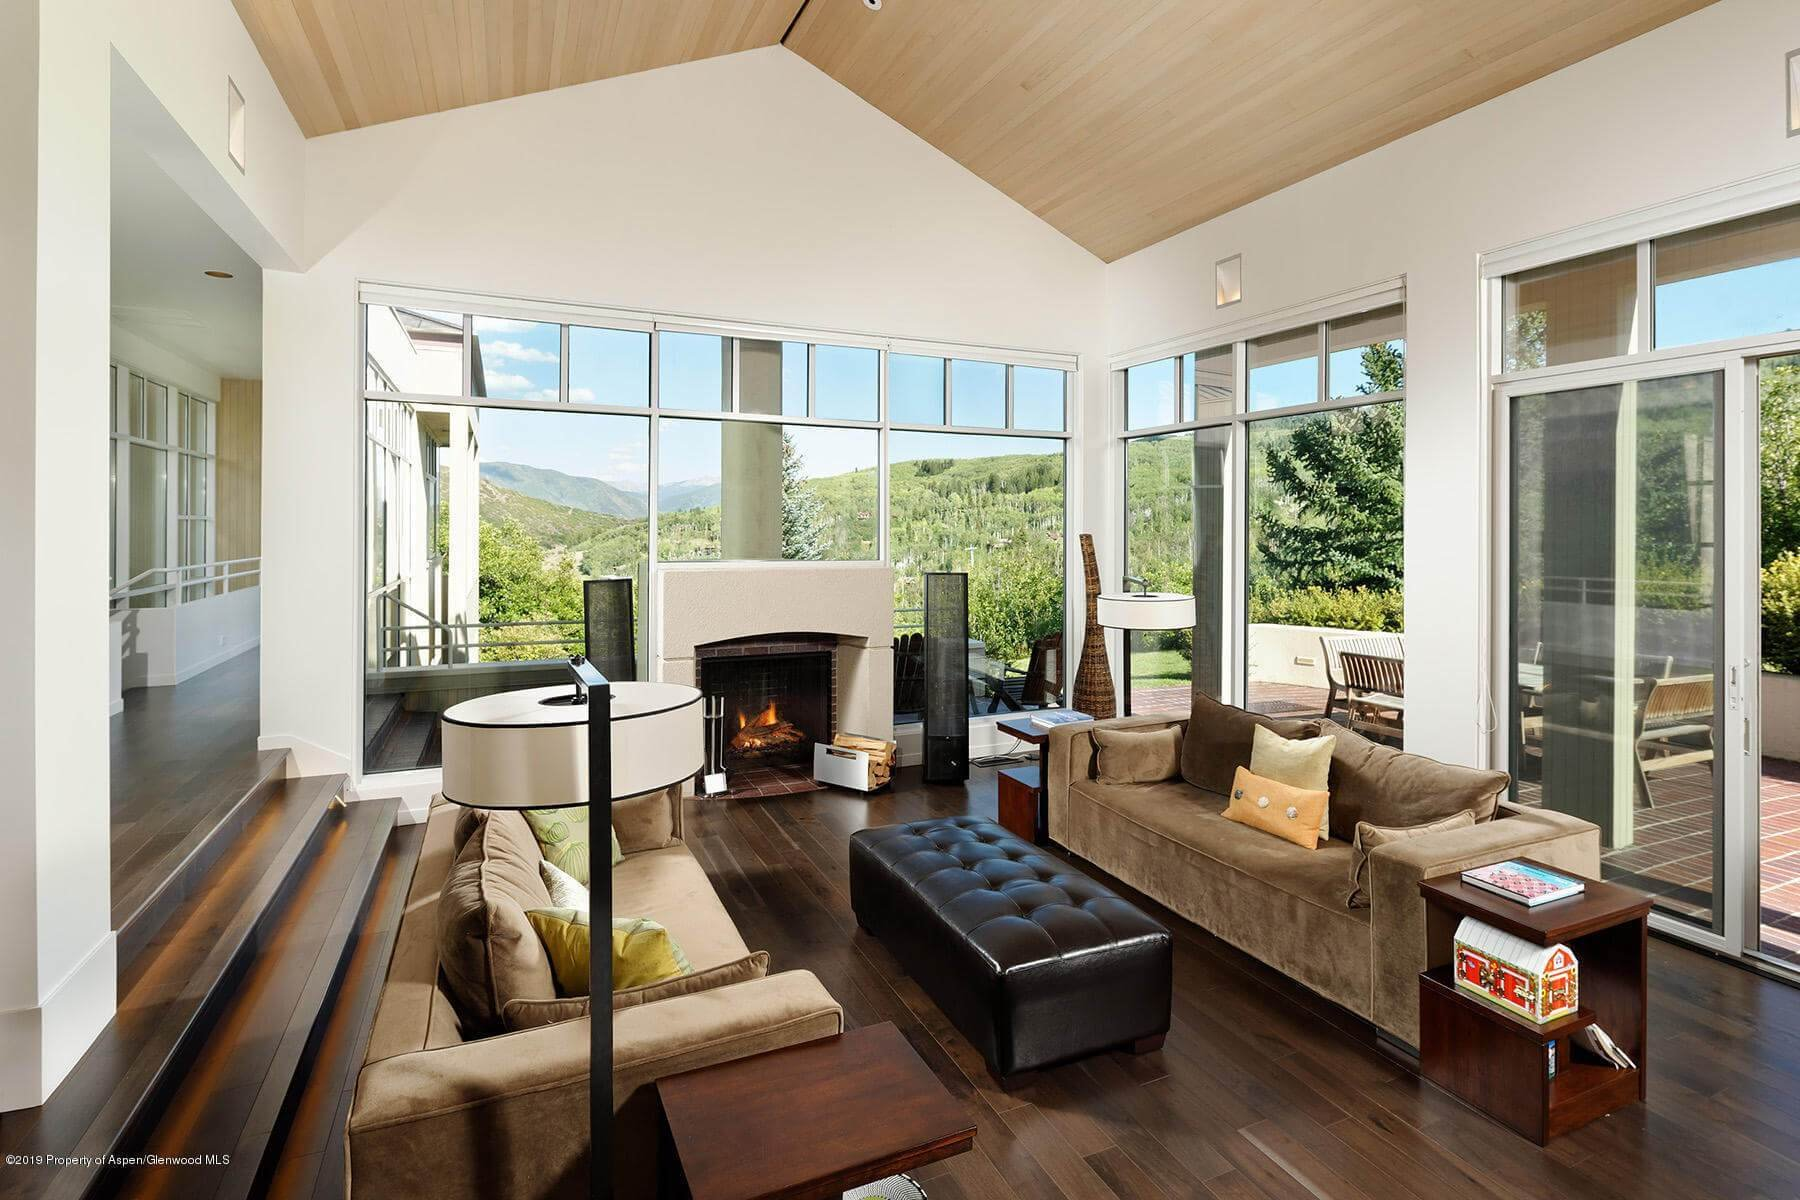 Snowmass Village 1987 Built/2016 Remodeled Home at 58 Fox Run Sells for $4.08M/$822 SF Furnished Image